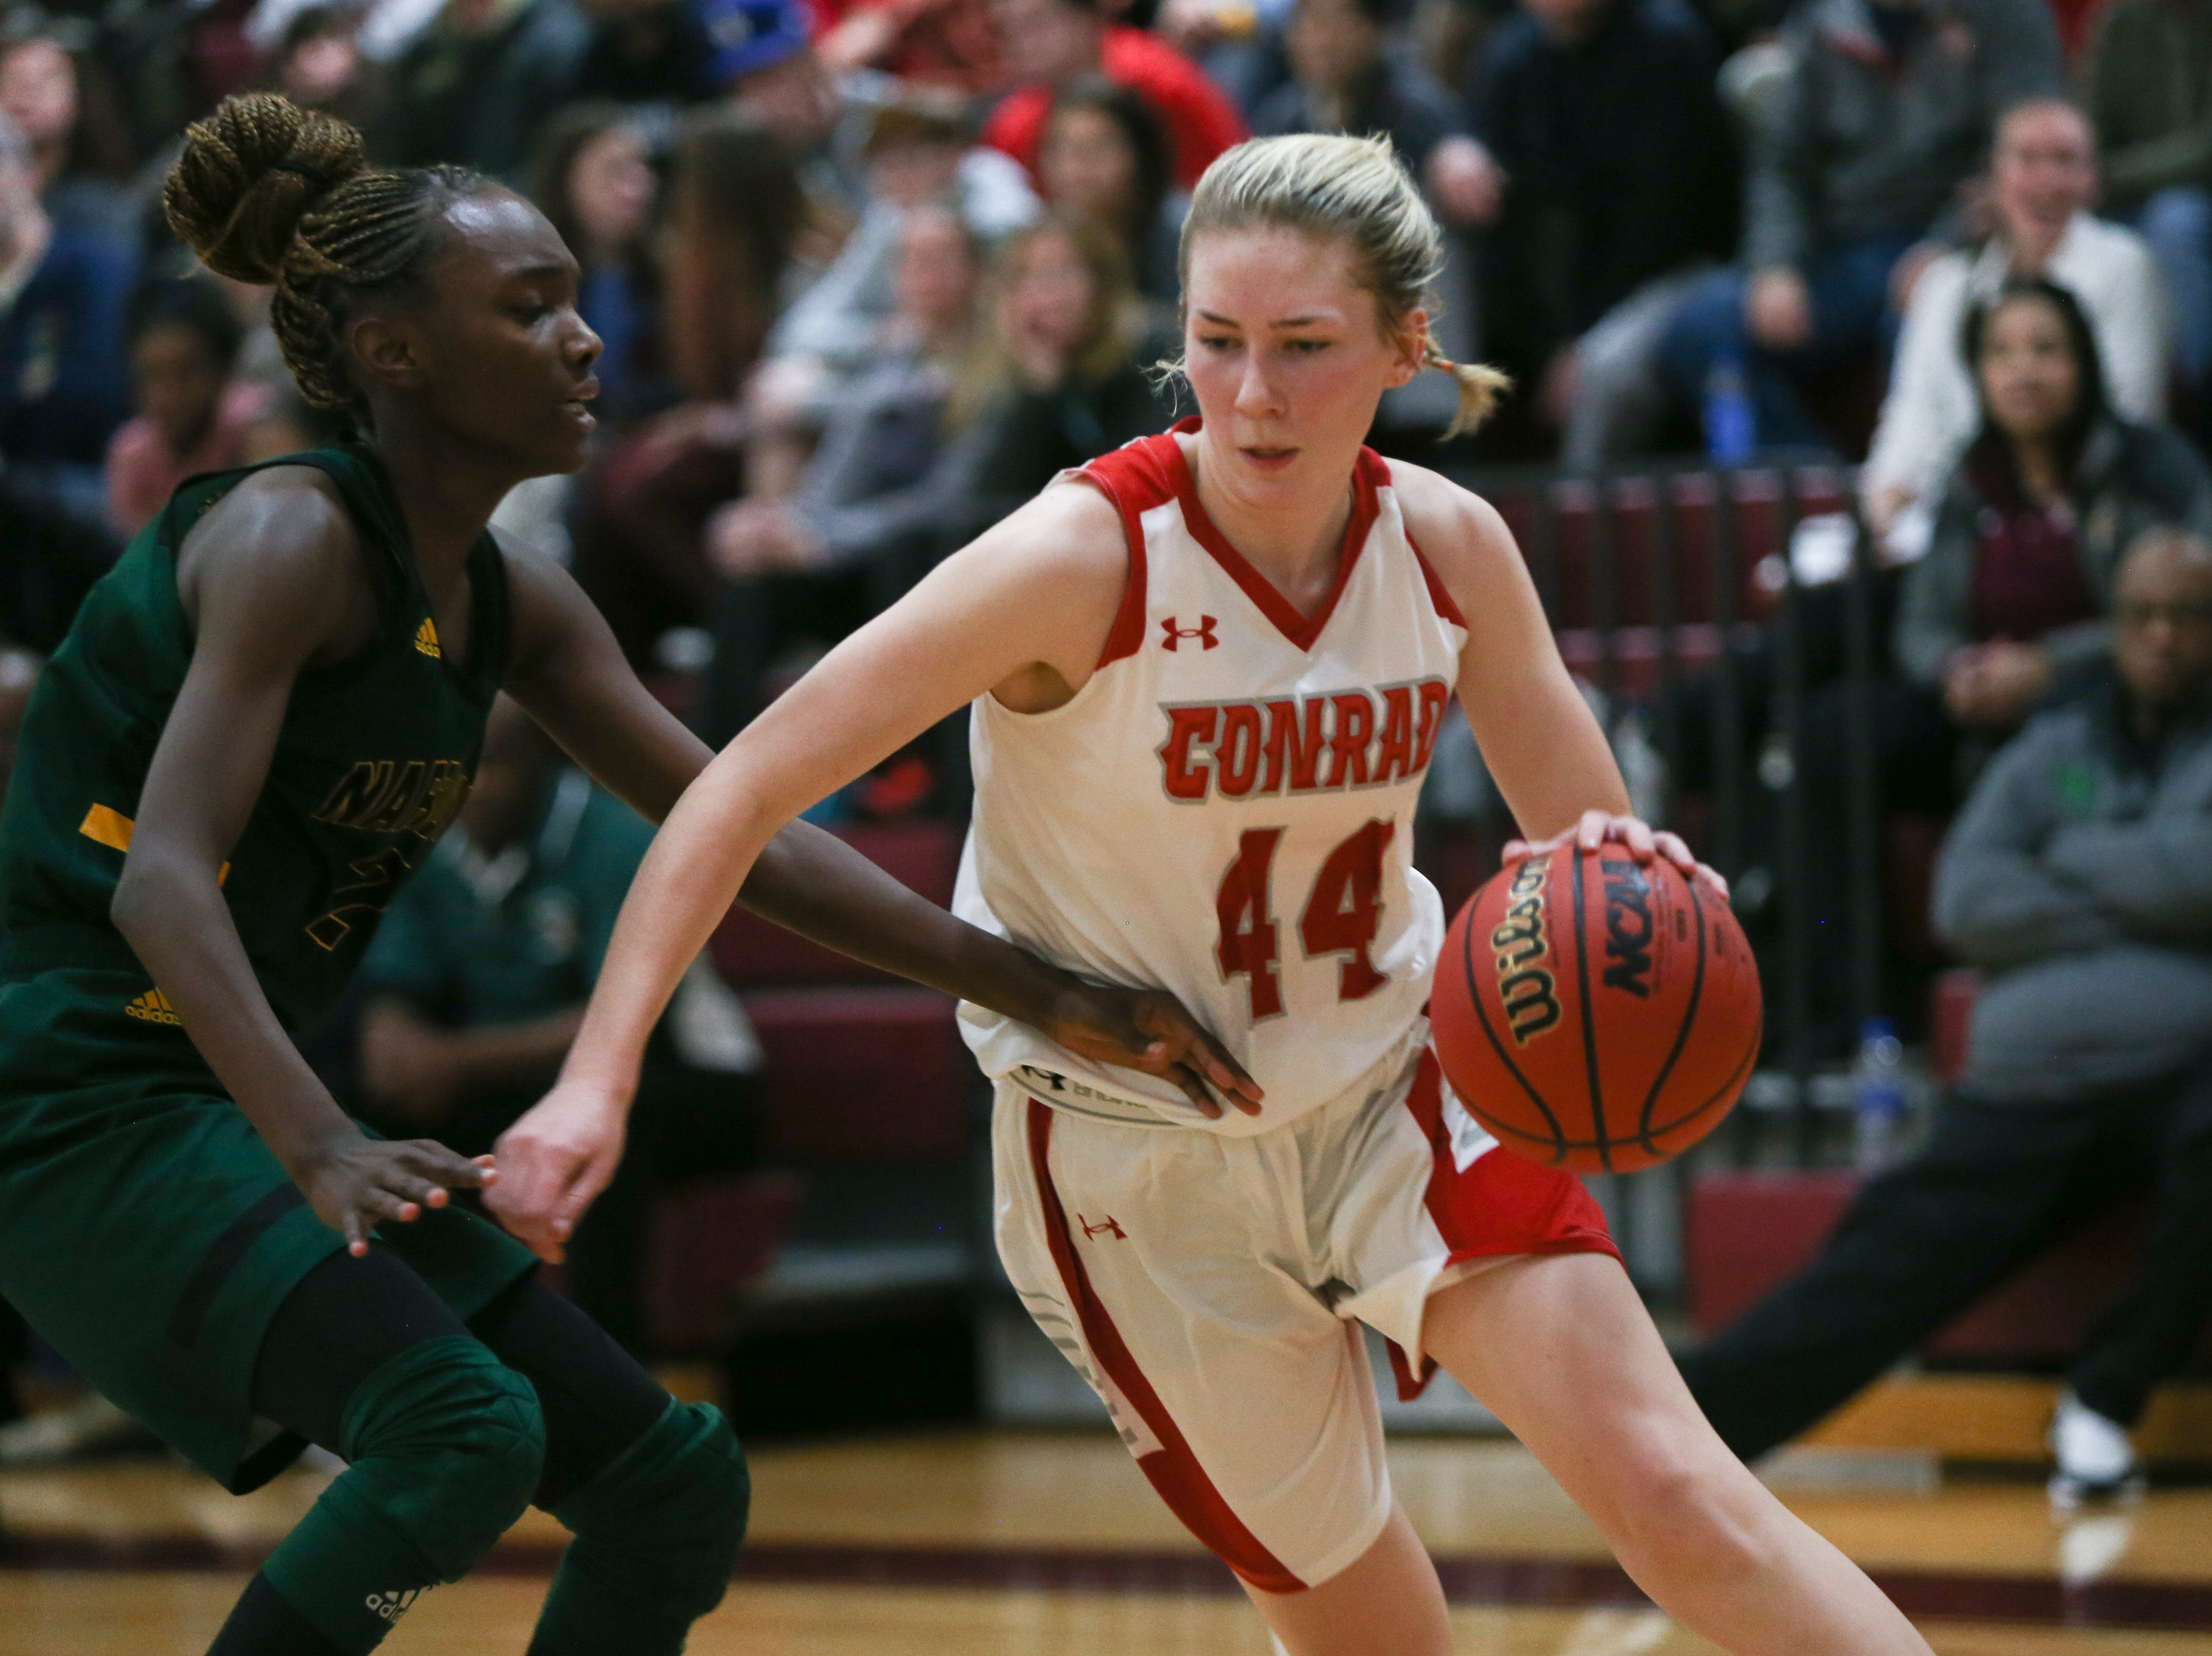 Conrad sophomore Stefanie Kulesza drives the baseline past Narbonne guard Keeya Smith. Conrad defeats Narbonne 54-35 in the Diamond State Classic at St. Elizabeth High School Thursday.